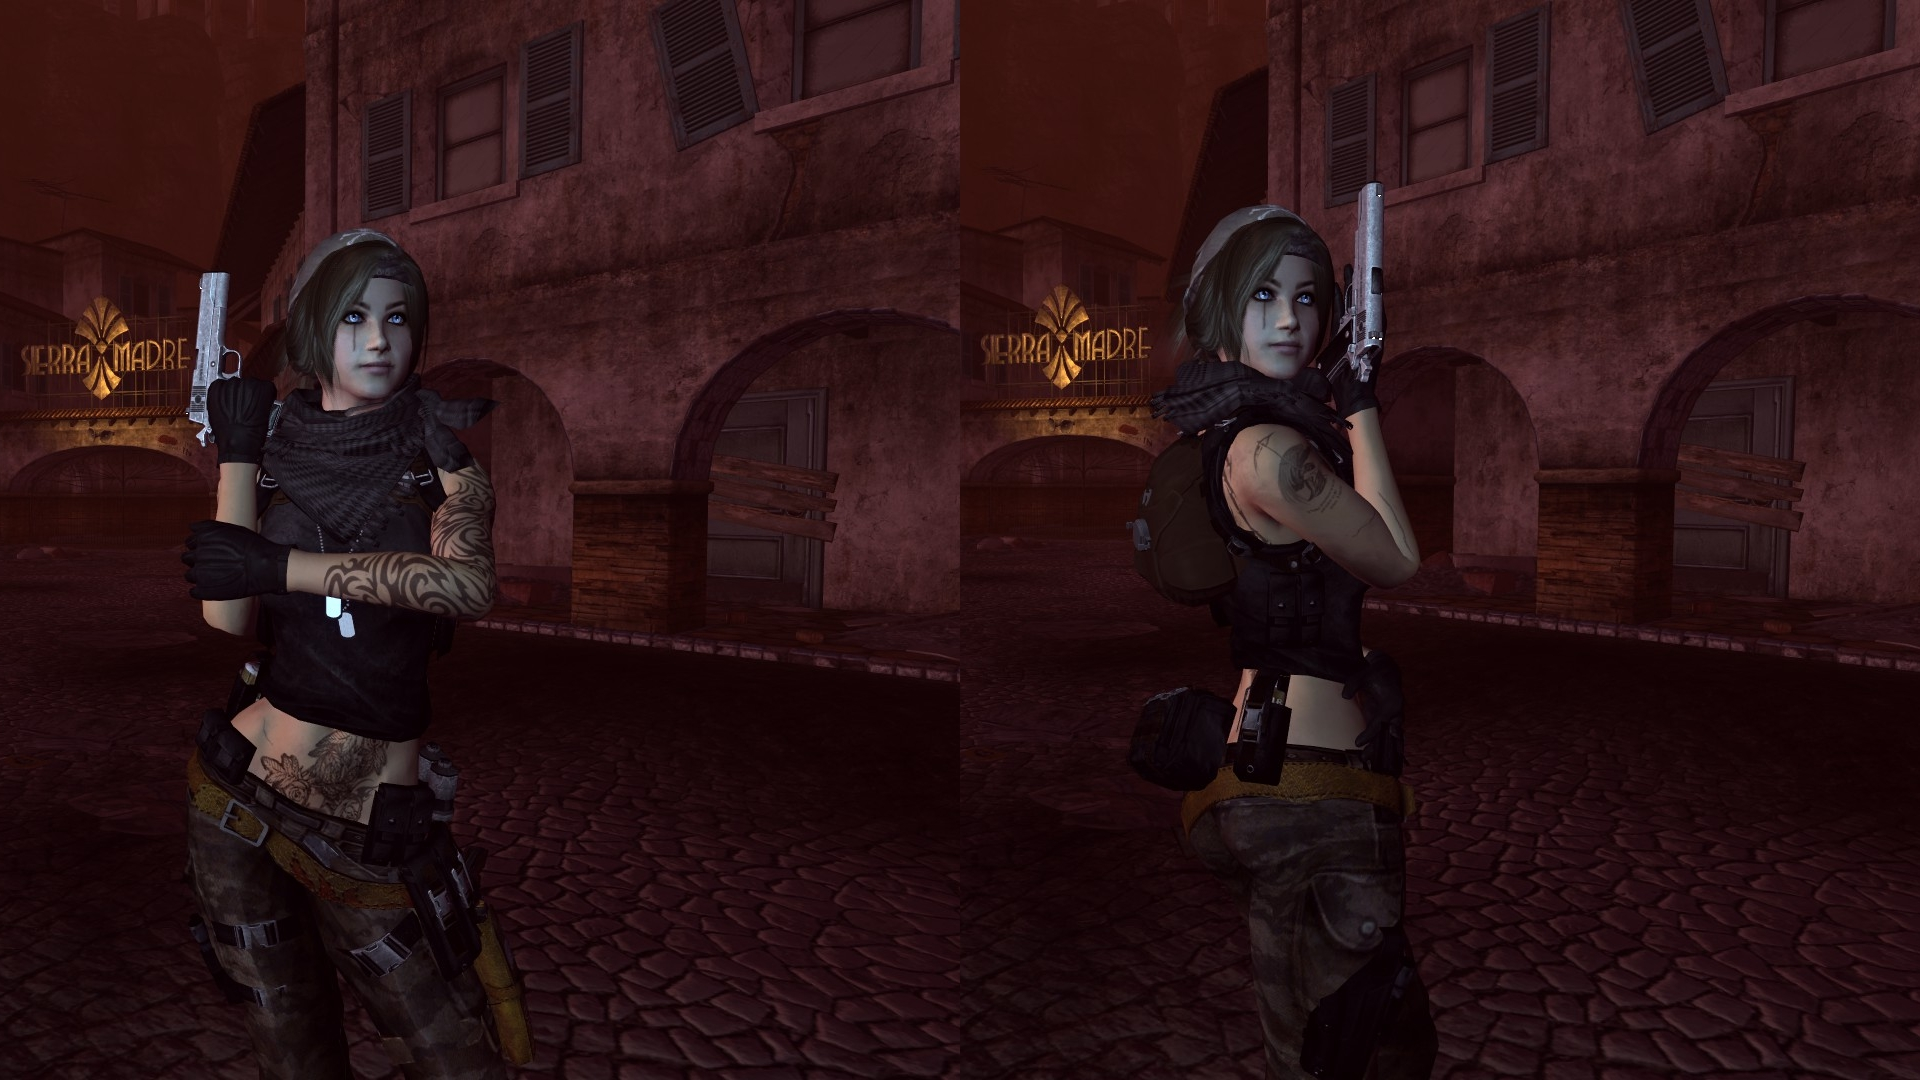 Tomb raider 2023 outfits sex images